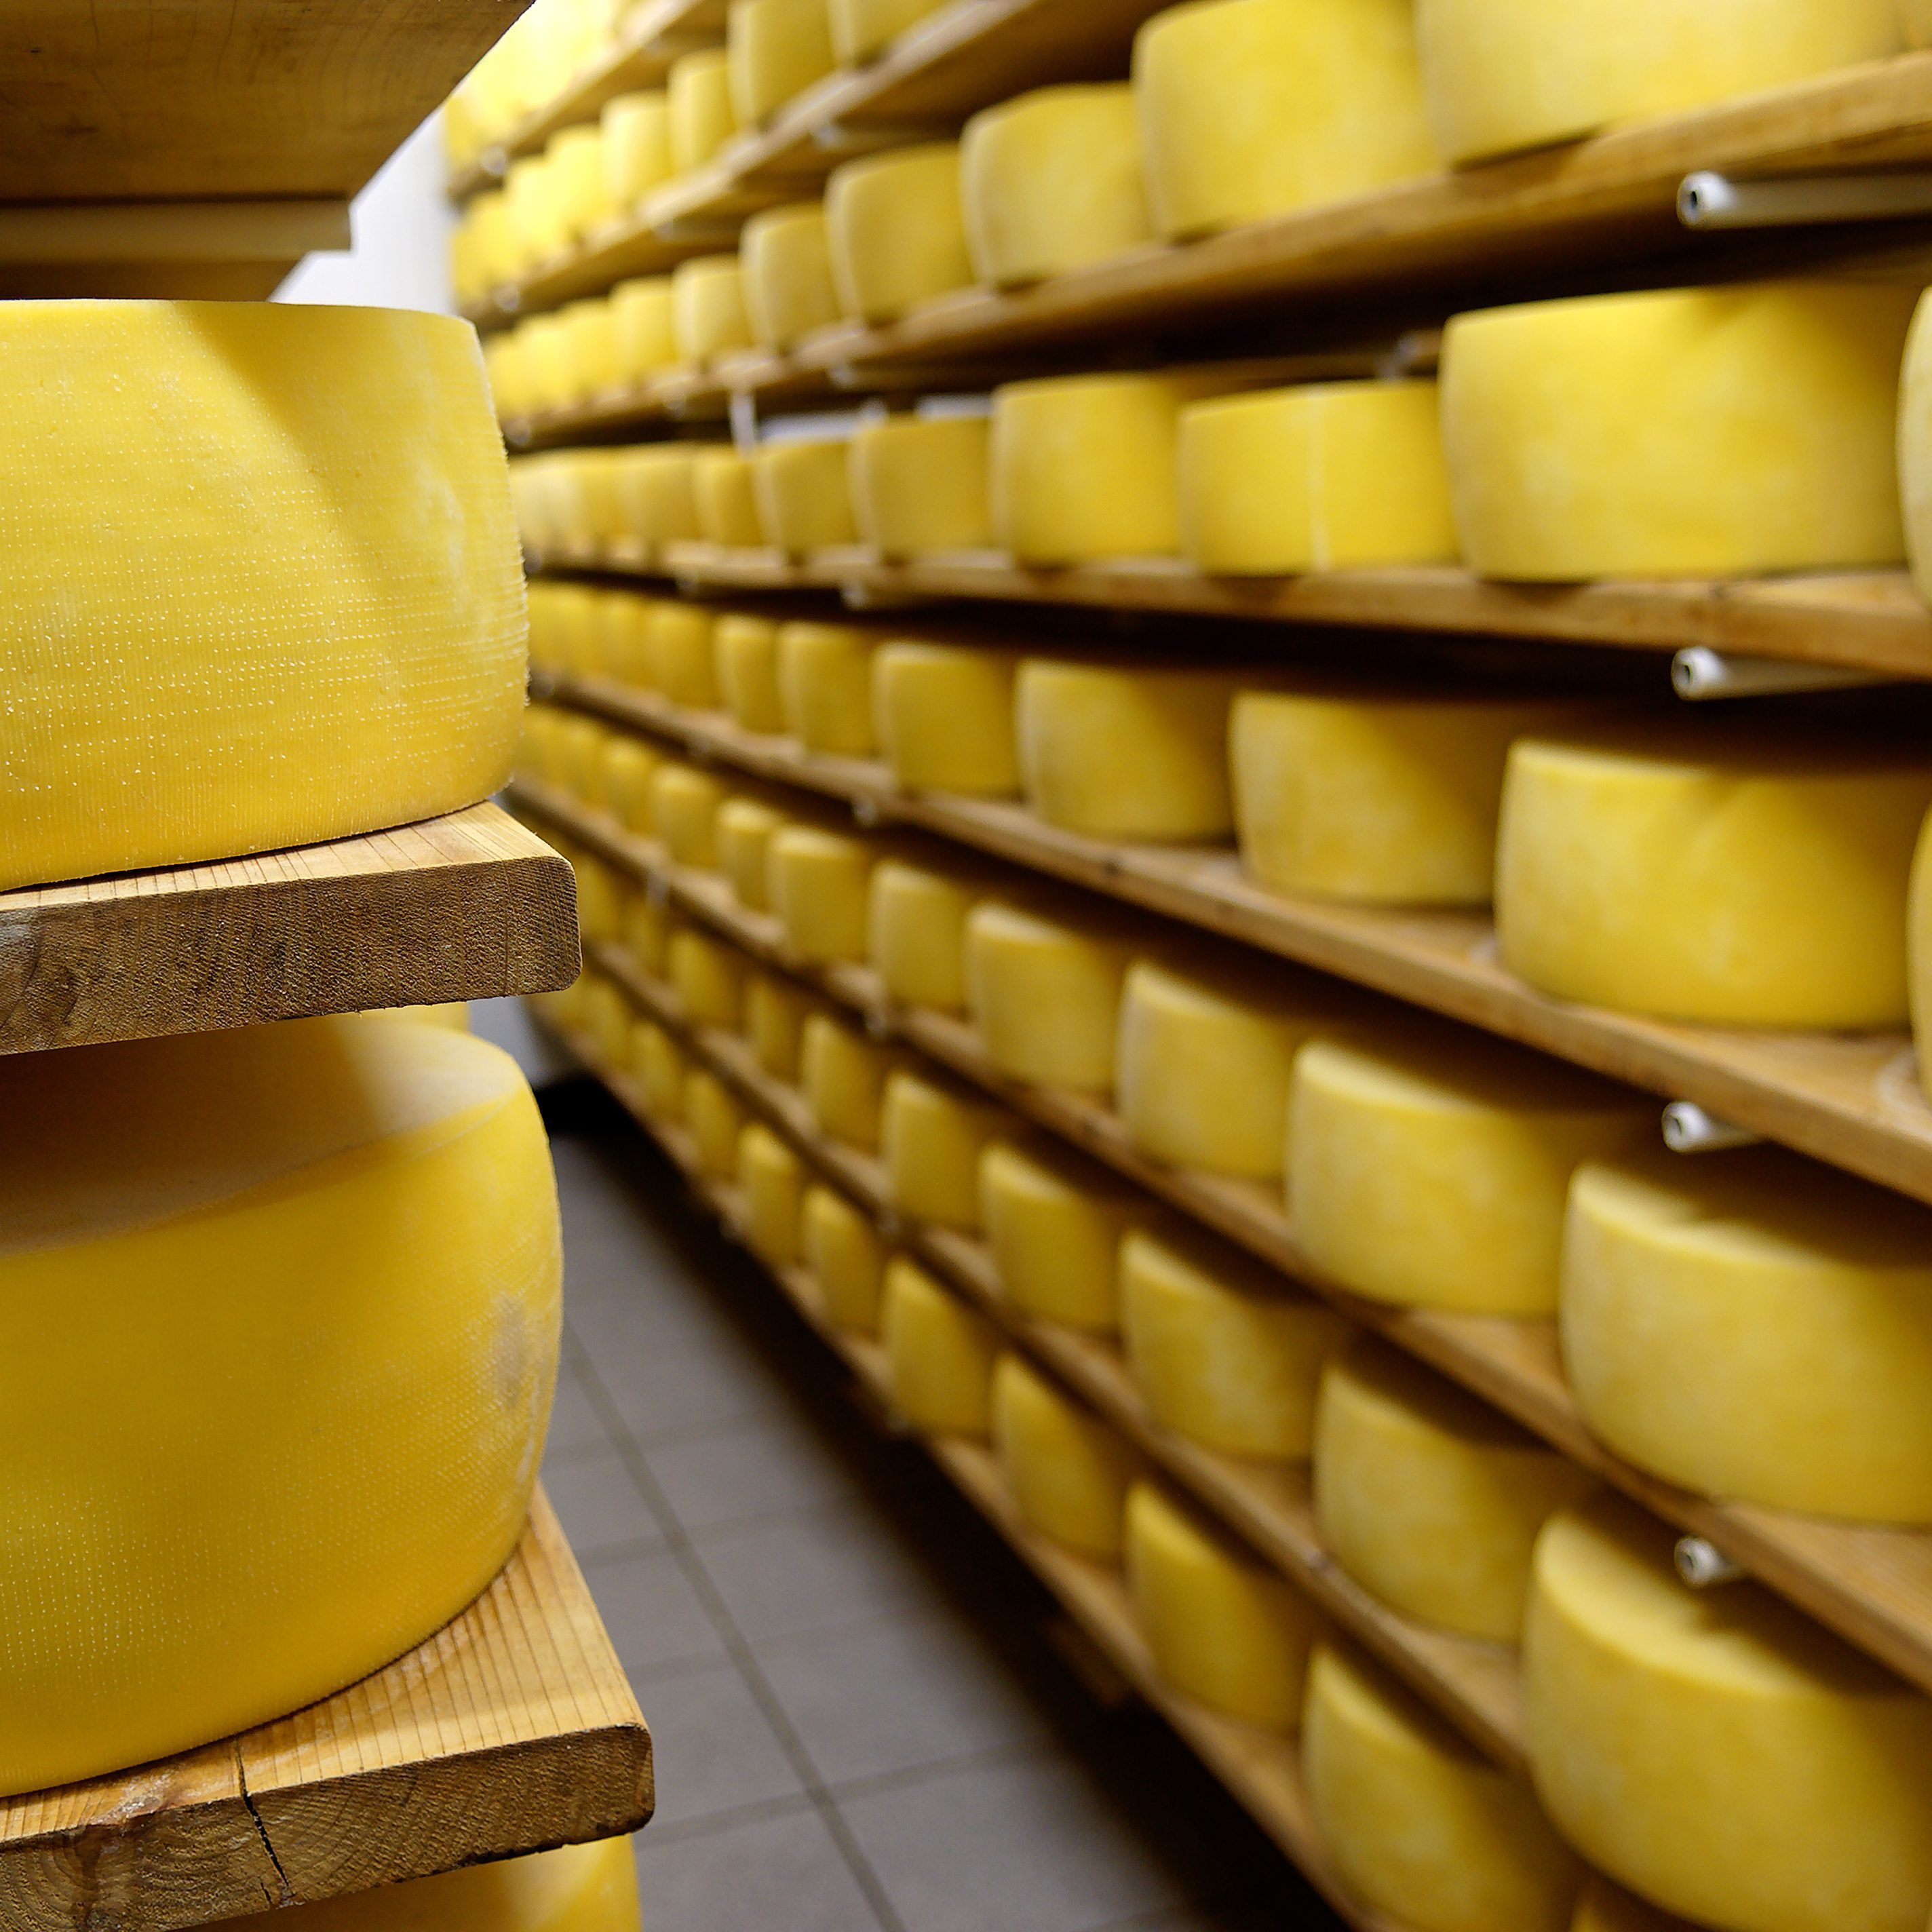 Cheese in shelves at dairy in Pico Island, Azores, Portugal. Storage room.